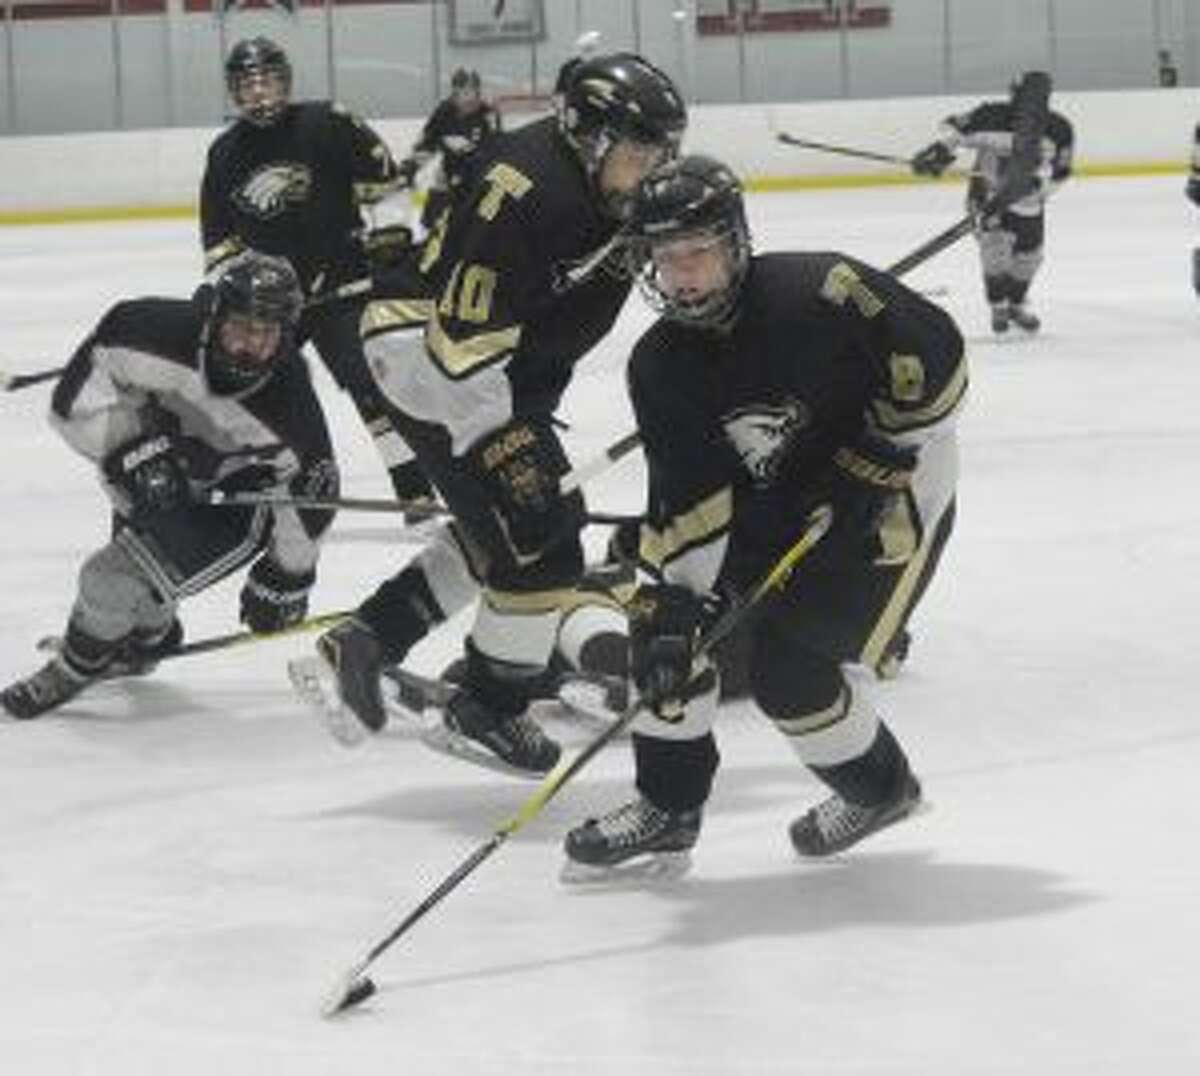 Jack McLean had a goal and assisted on the game-winner for Trumbull.